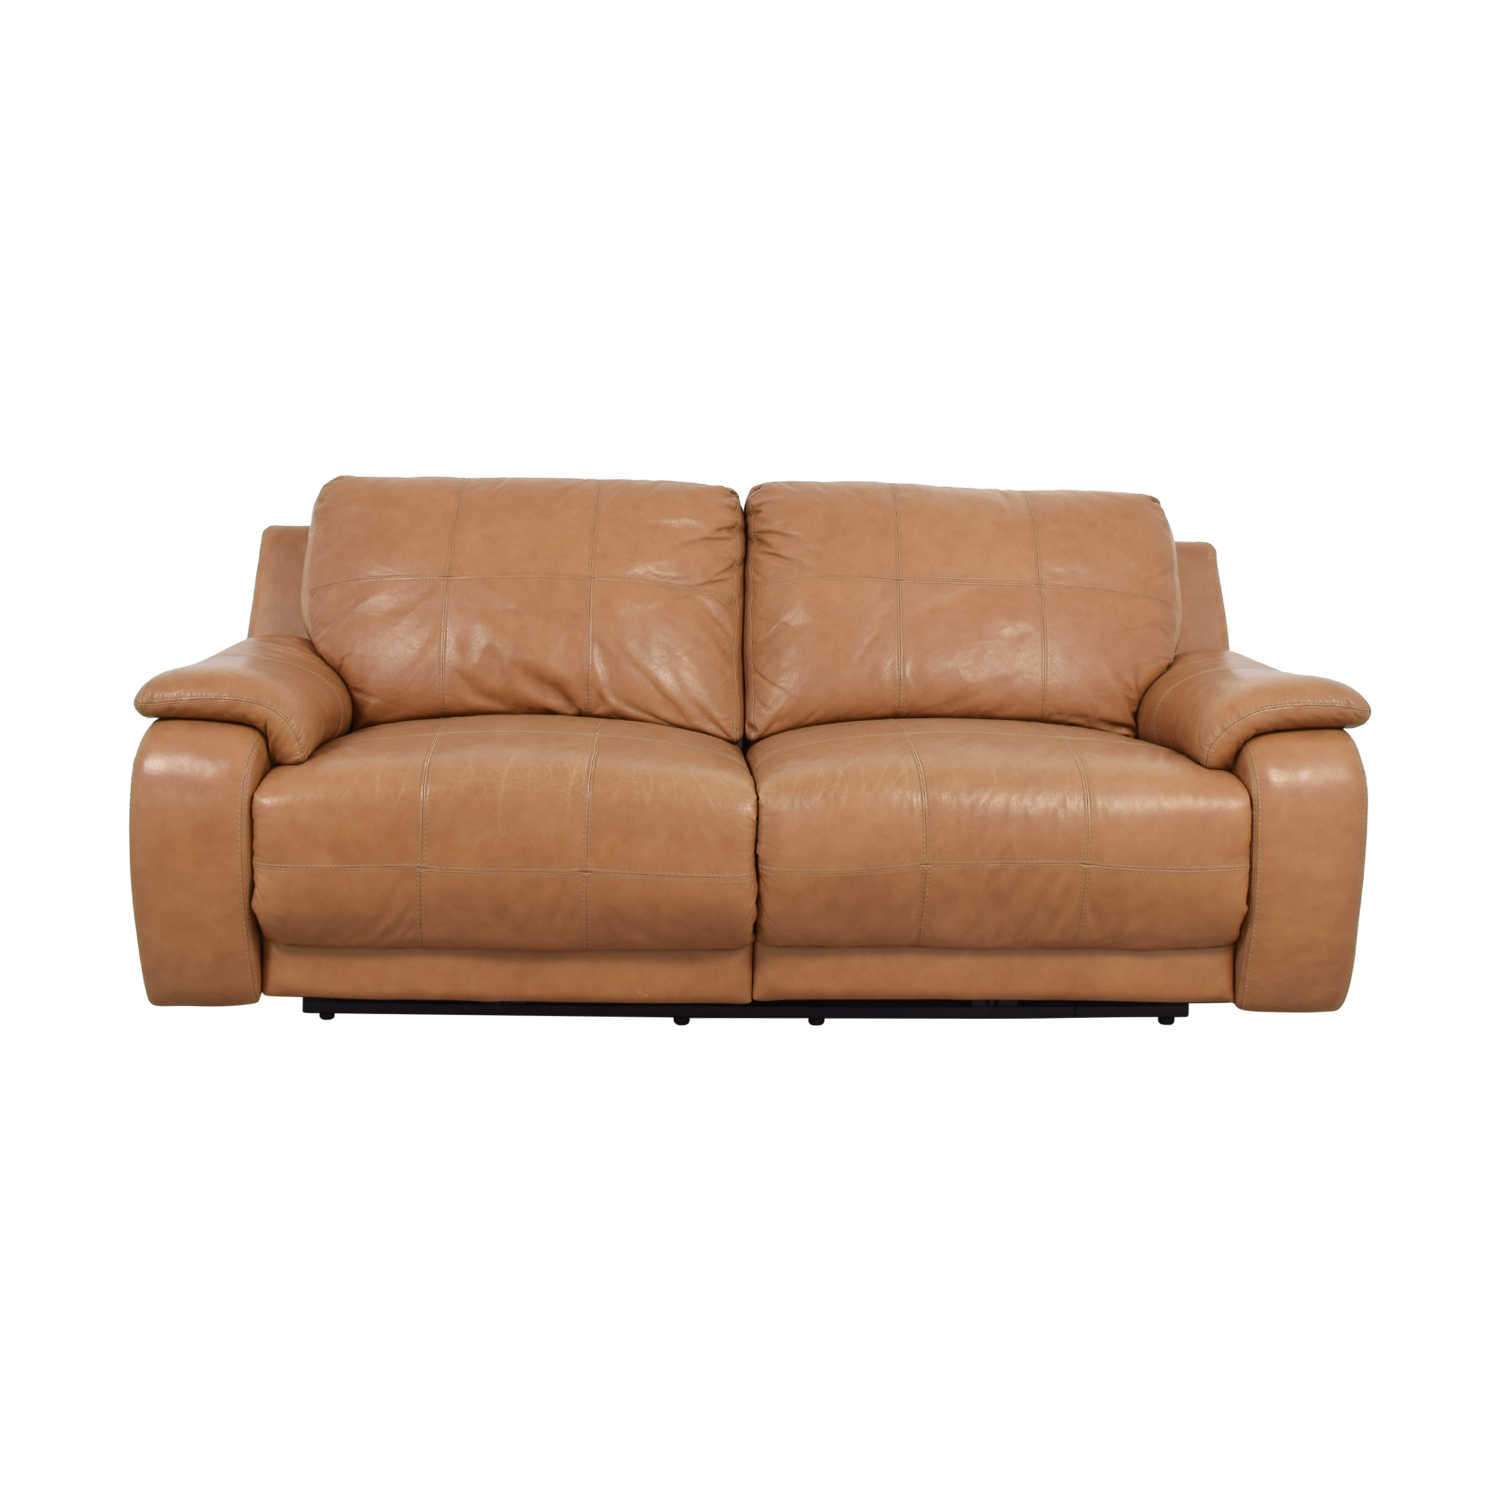 Raymour & Flanigan Raymour & Flanigan Power Recliner Brown Leather Sofa price